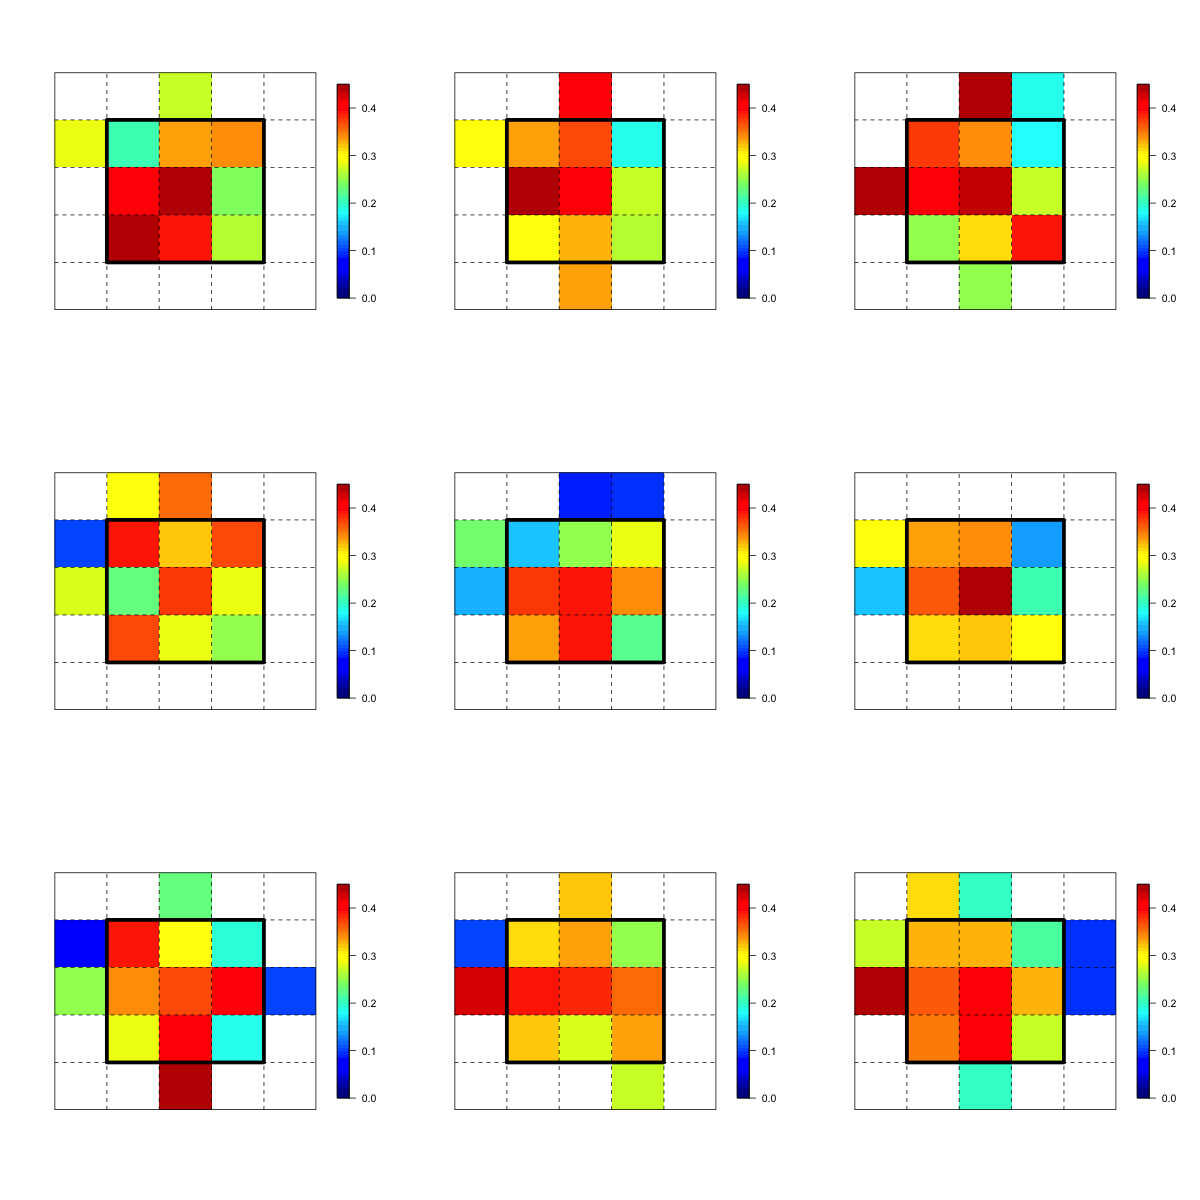 how to read a heat map